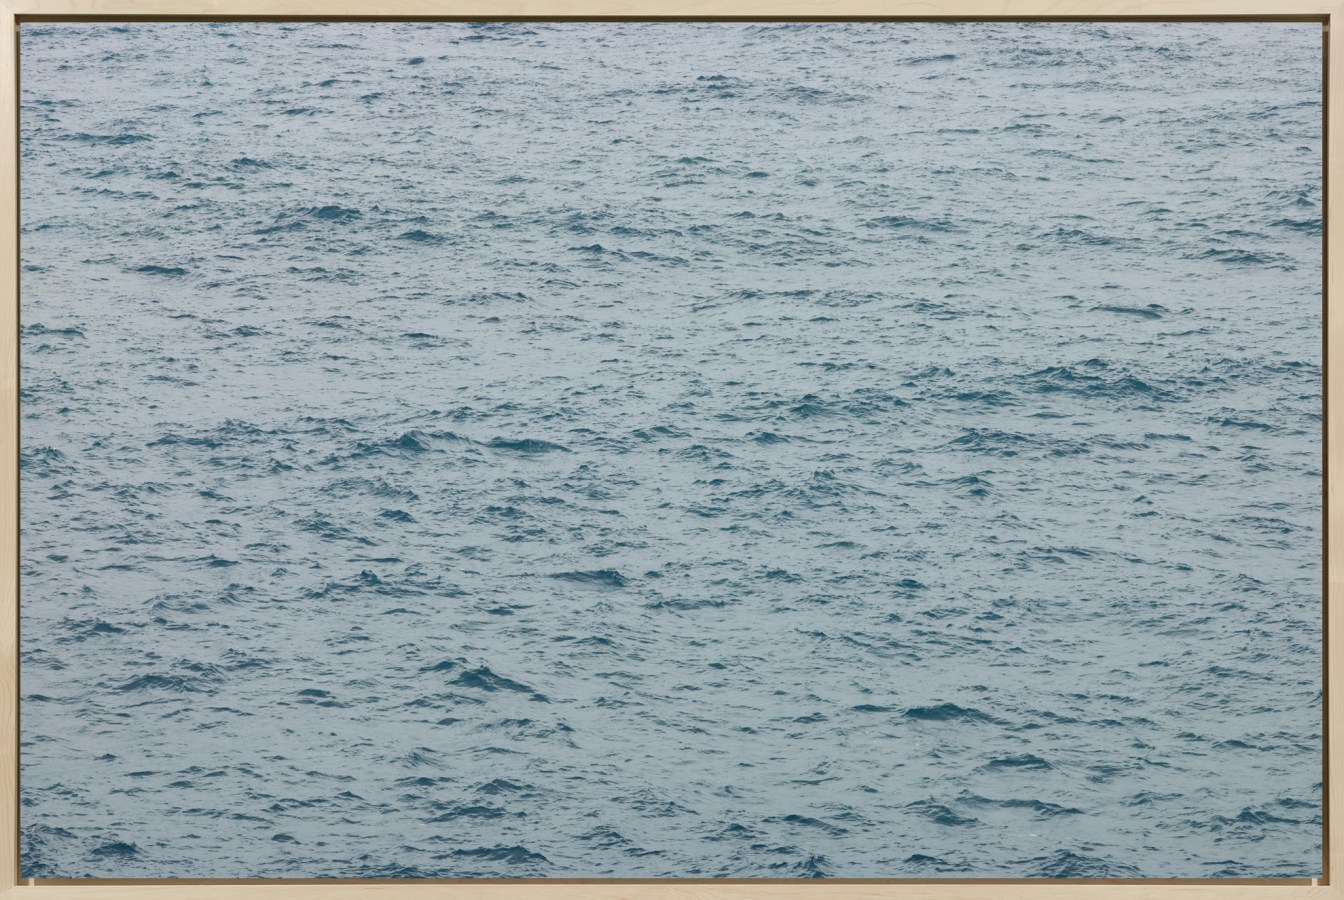 Framed color photograph of the surface of the sea